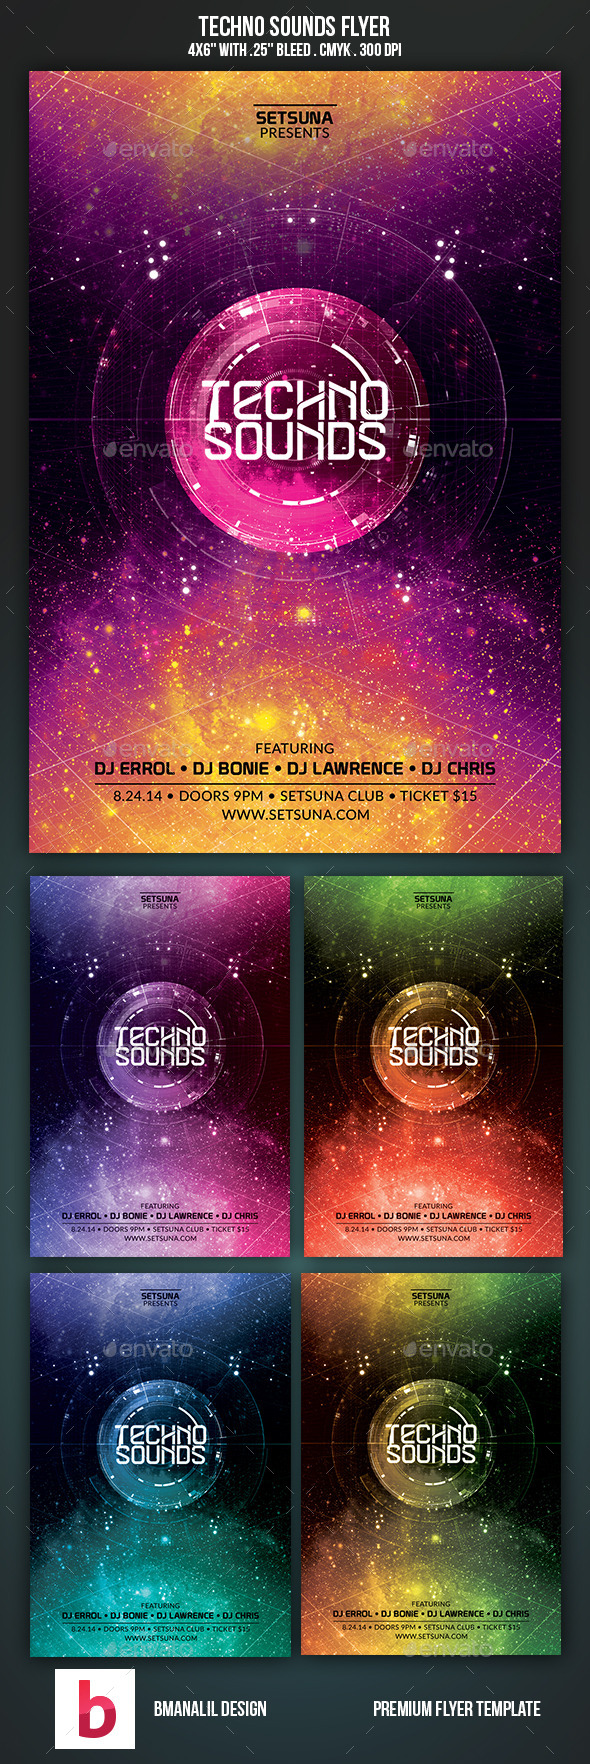 Techno Sounds Flyer - Clubs & Parties Events